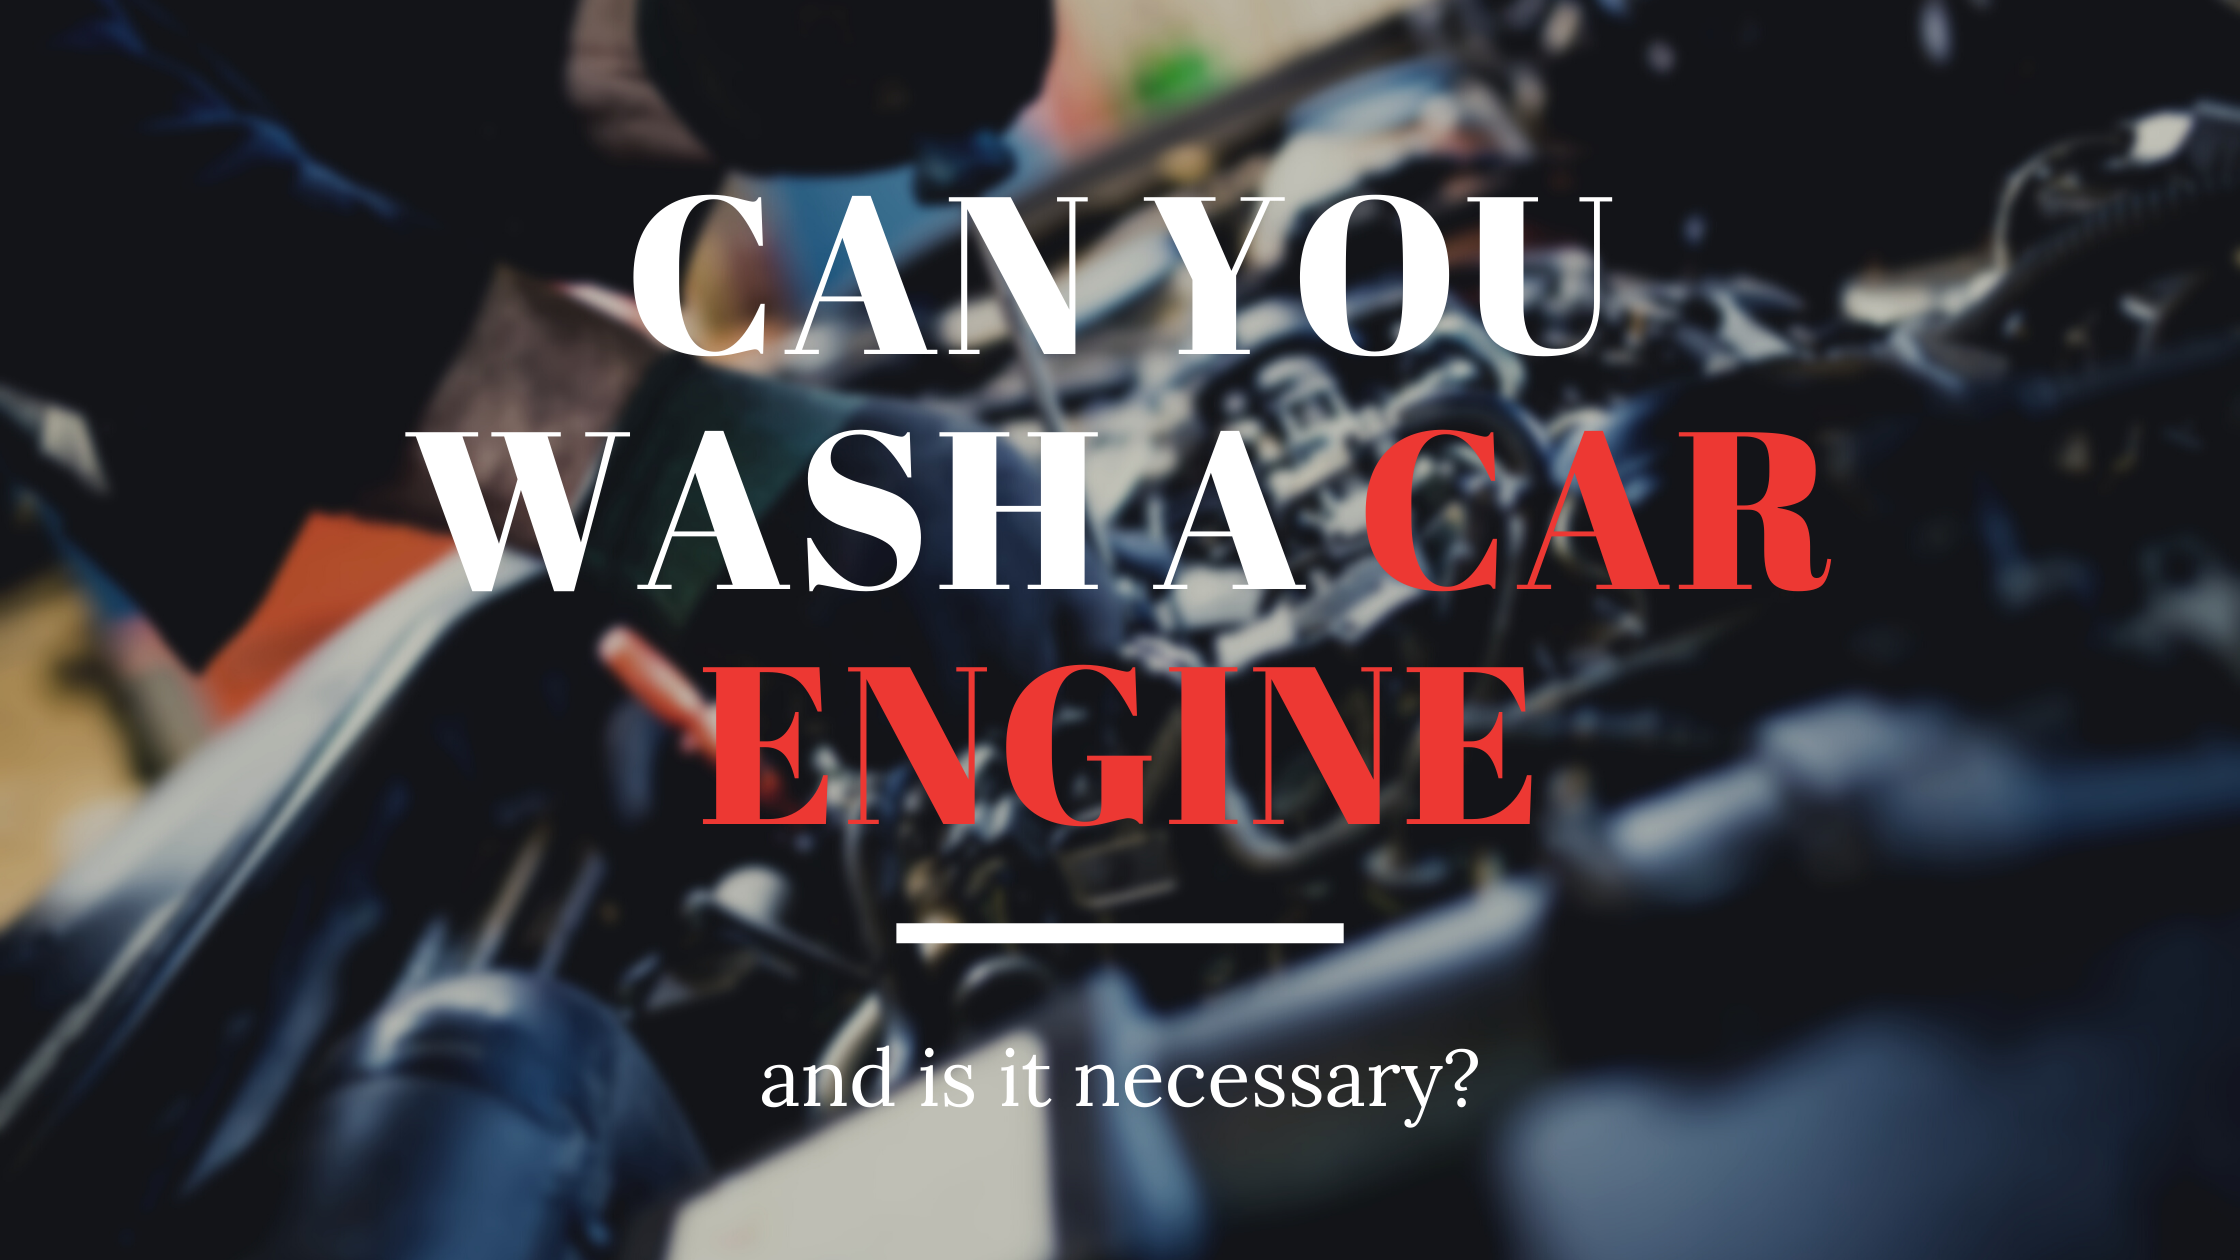 Can you wash a car engine